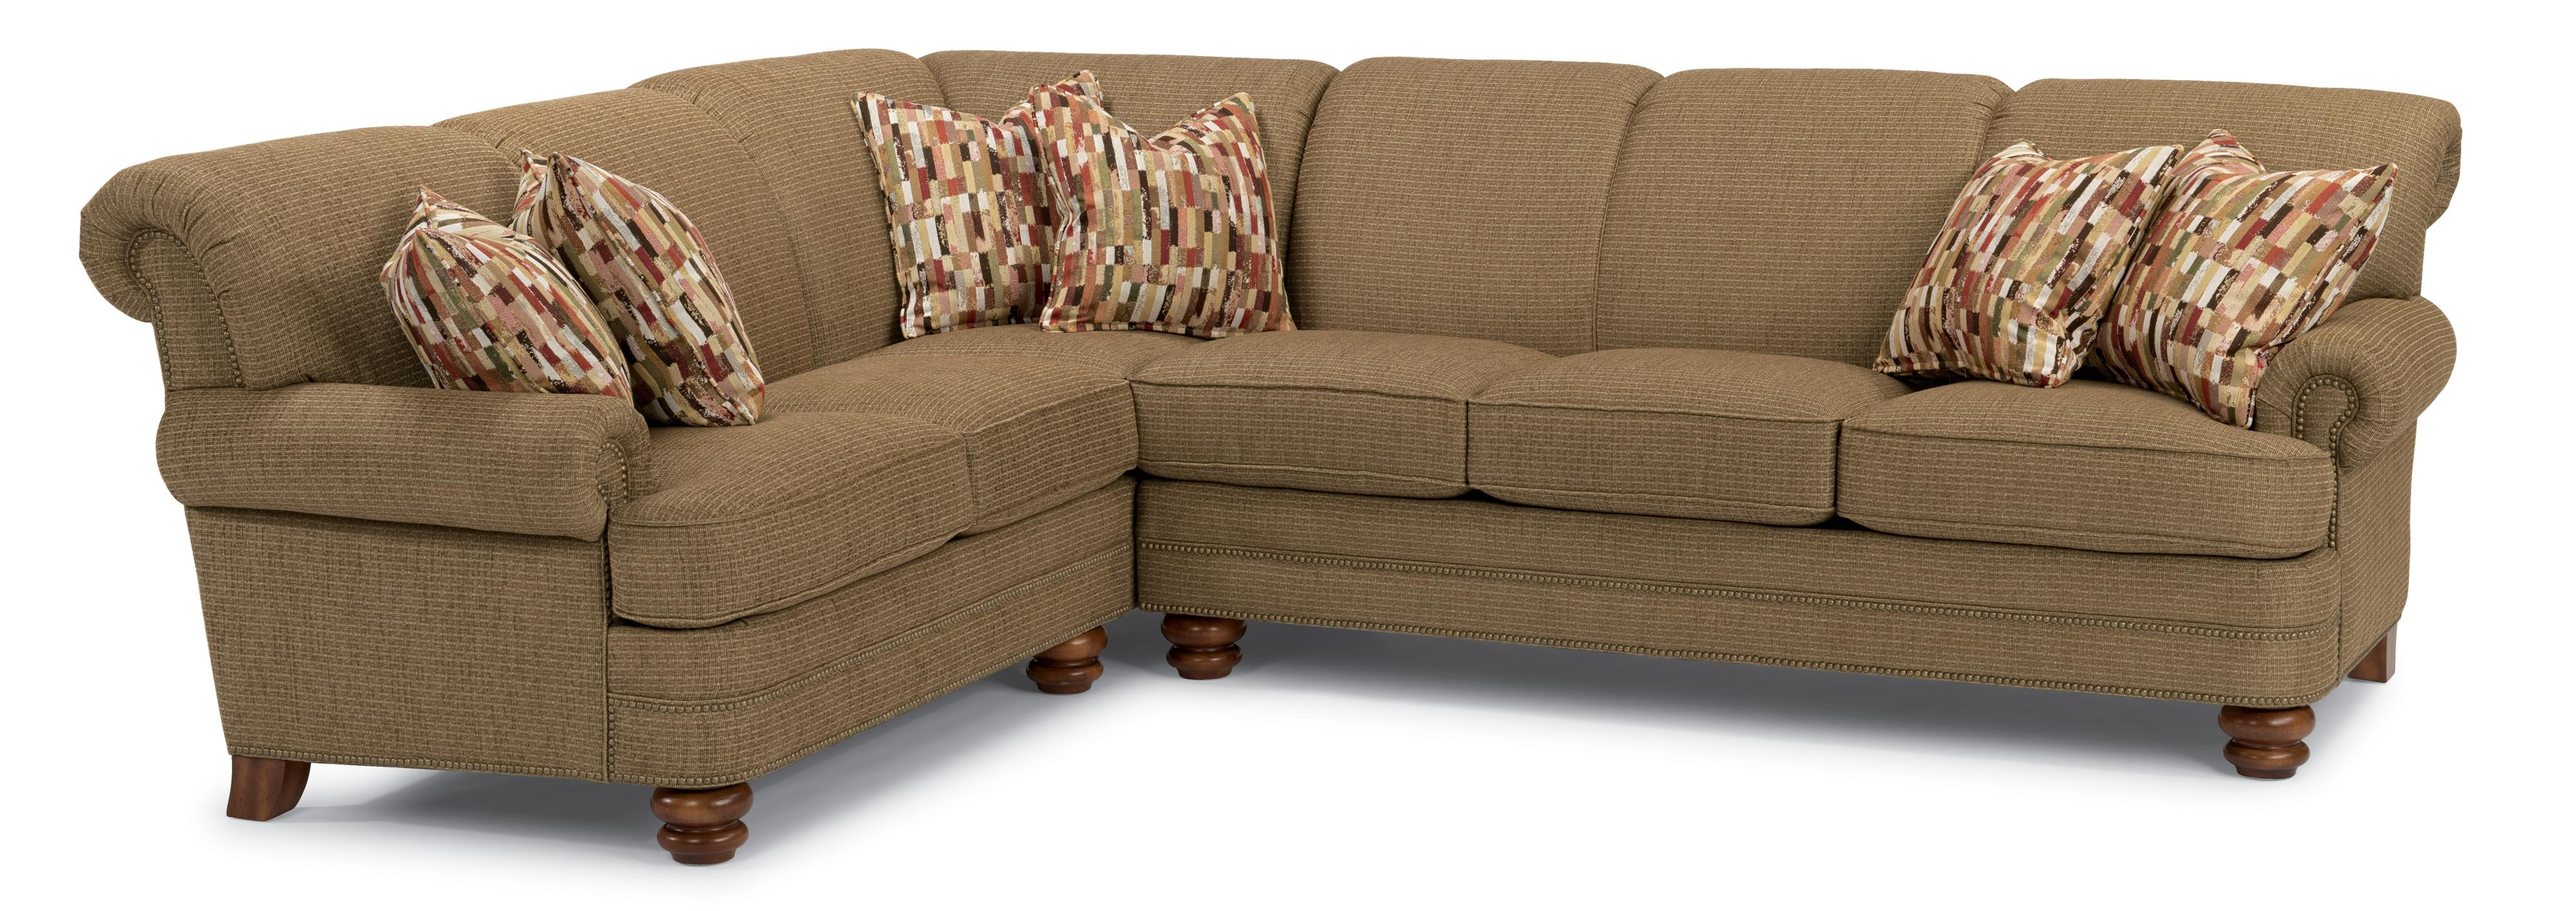 Flexsteel Bay Bridge 2 Pc Sectional Sofa - Item Number: 7791-33+7791-38-805-90